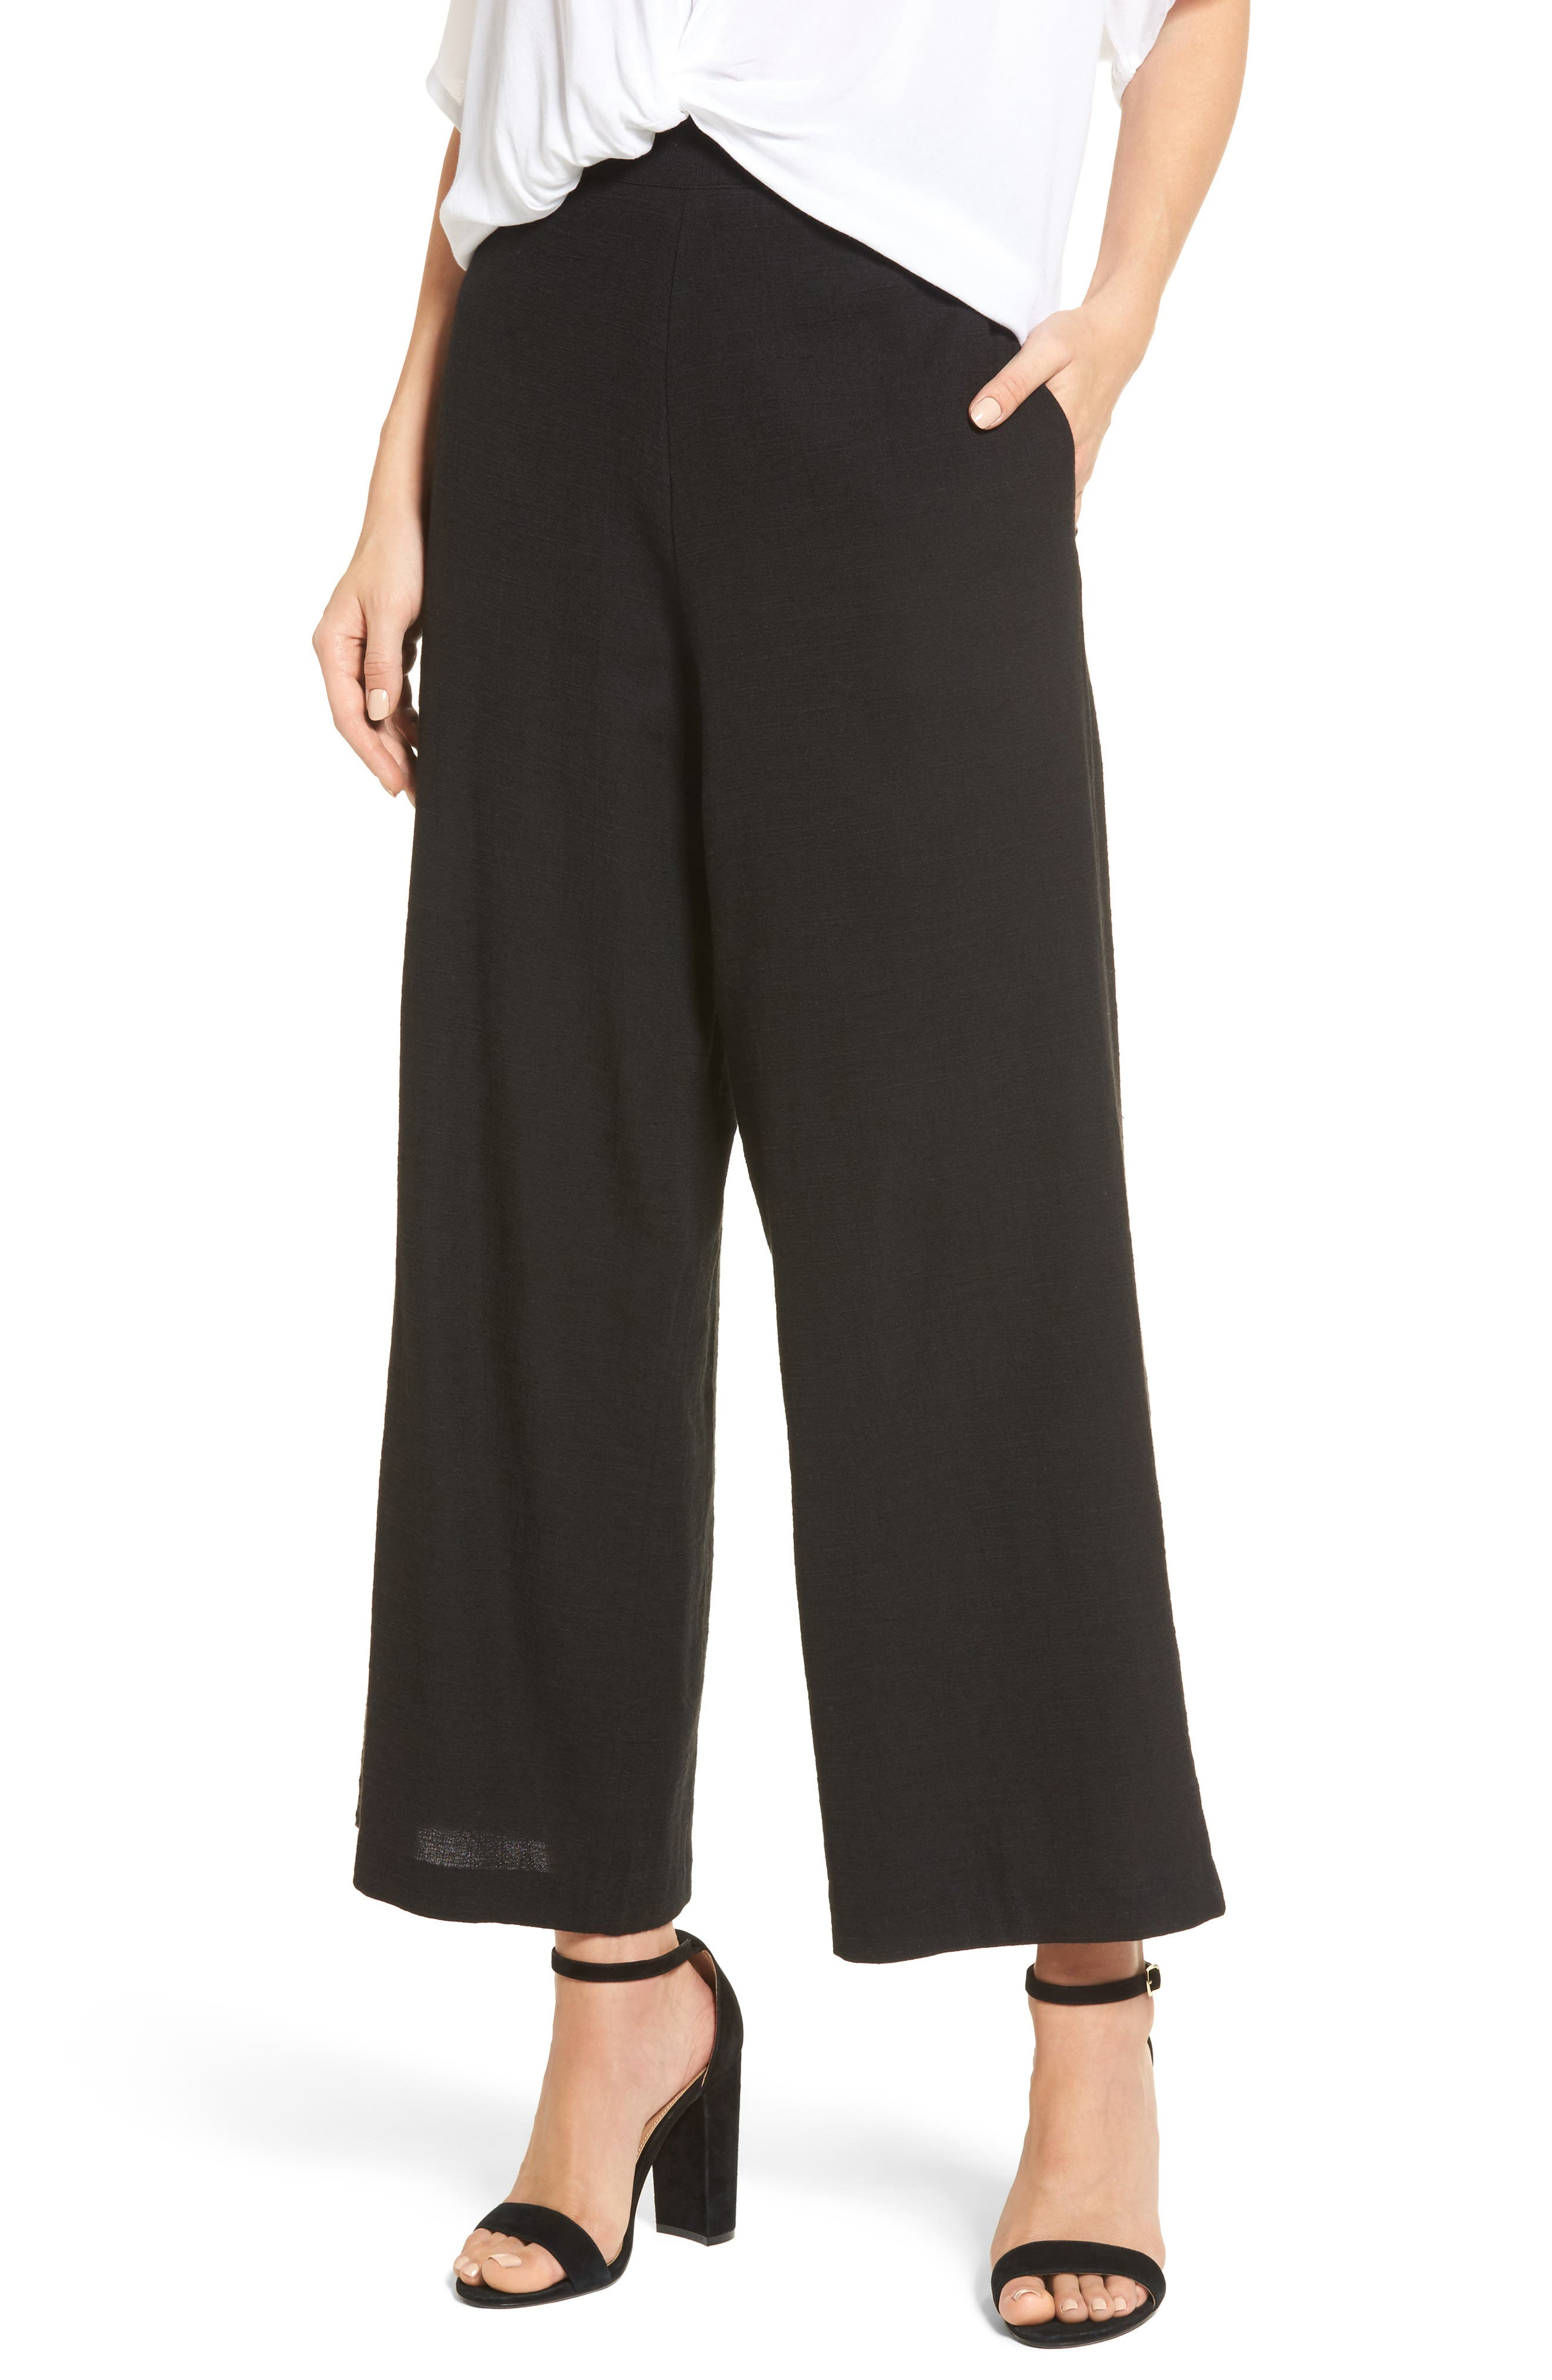 Alternate Image 1 Selected - StyleKeepers Montauk High Waist Culottes